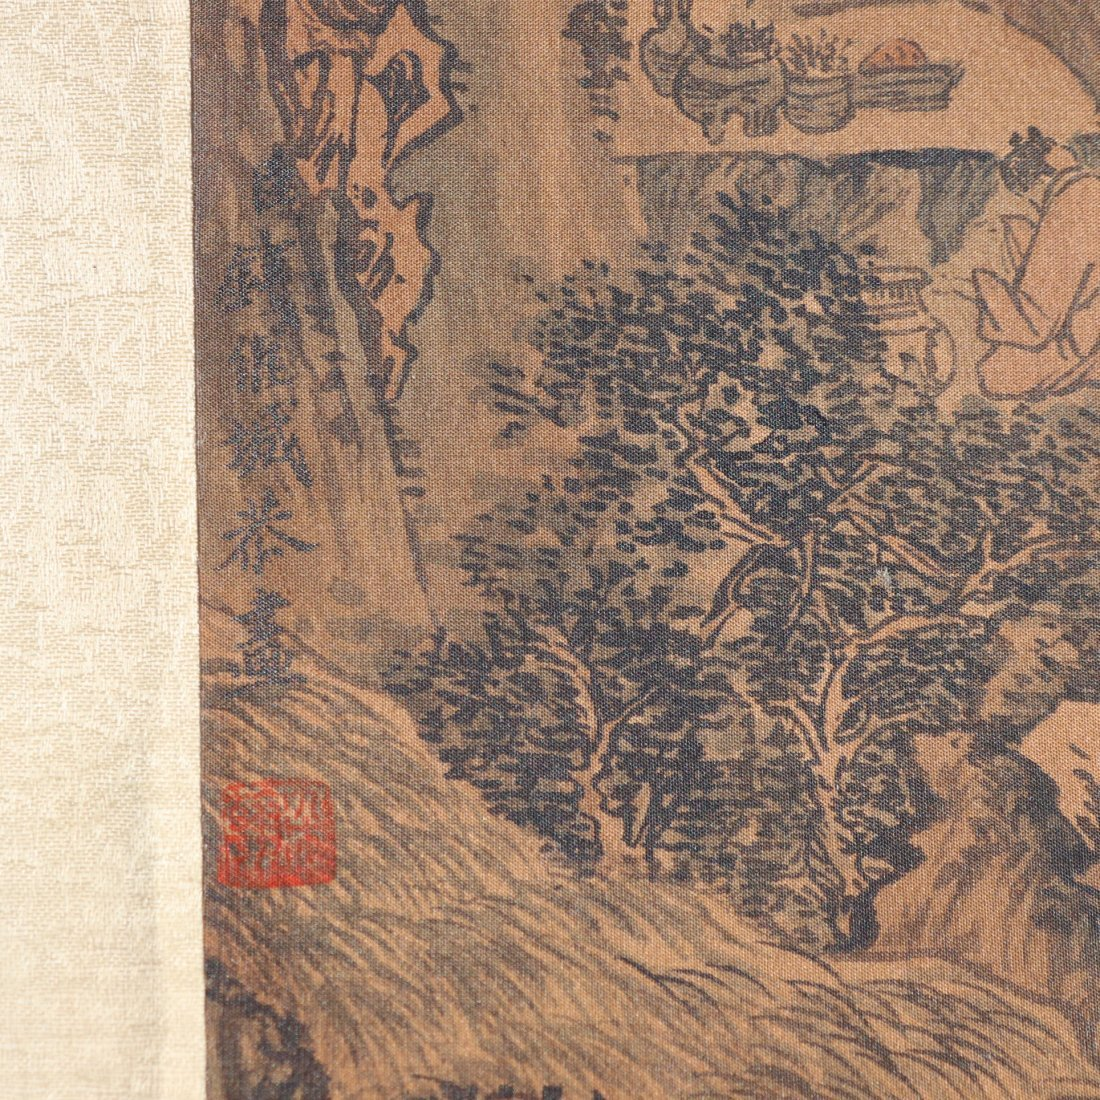 A Chinese Ink and Color Handscroll Painting Qian Weiche - 10